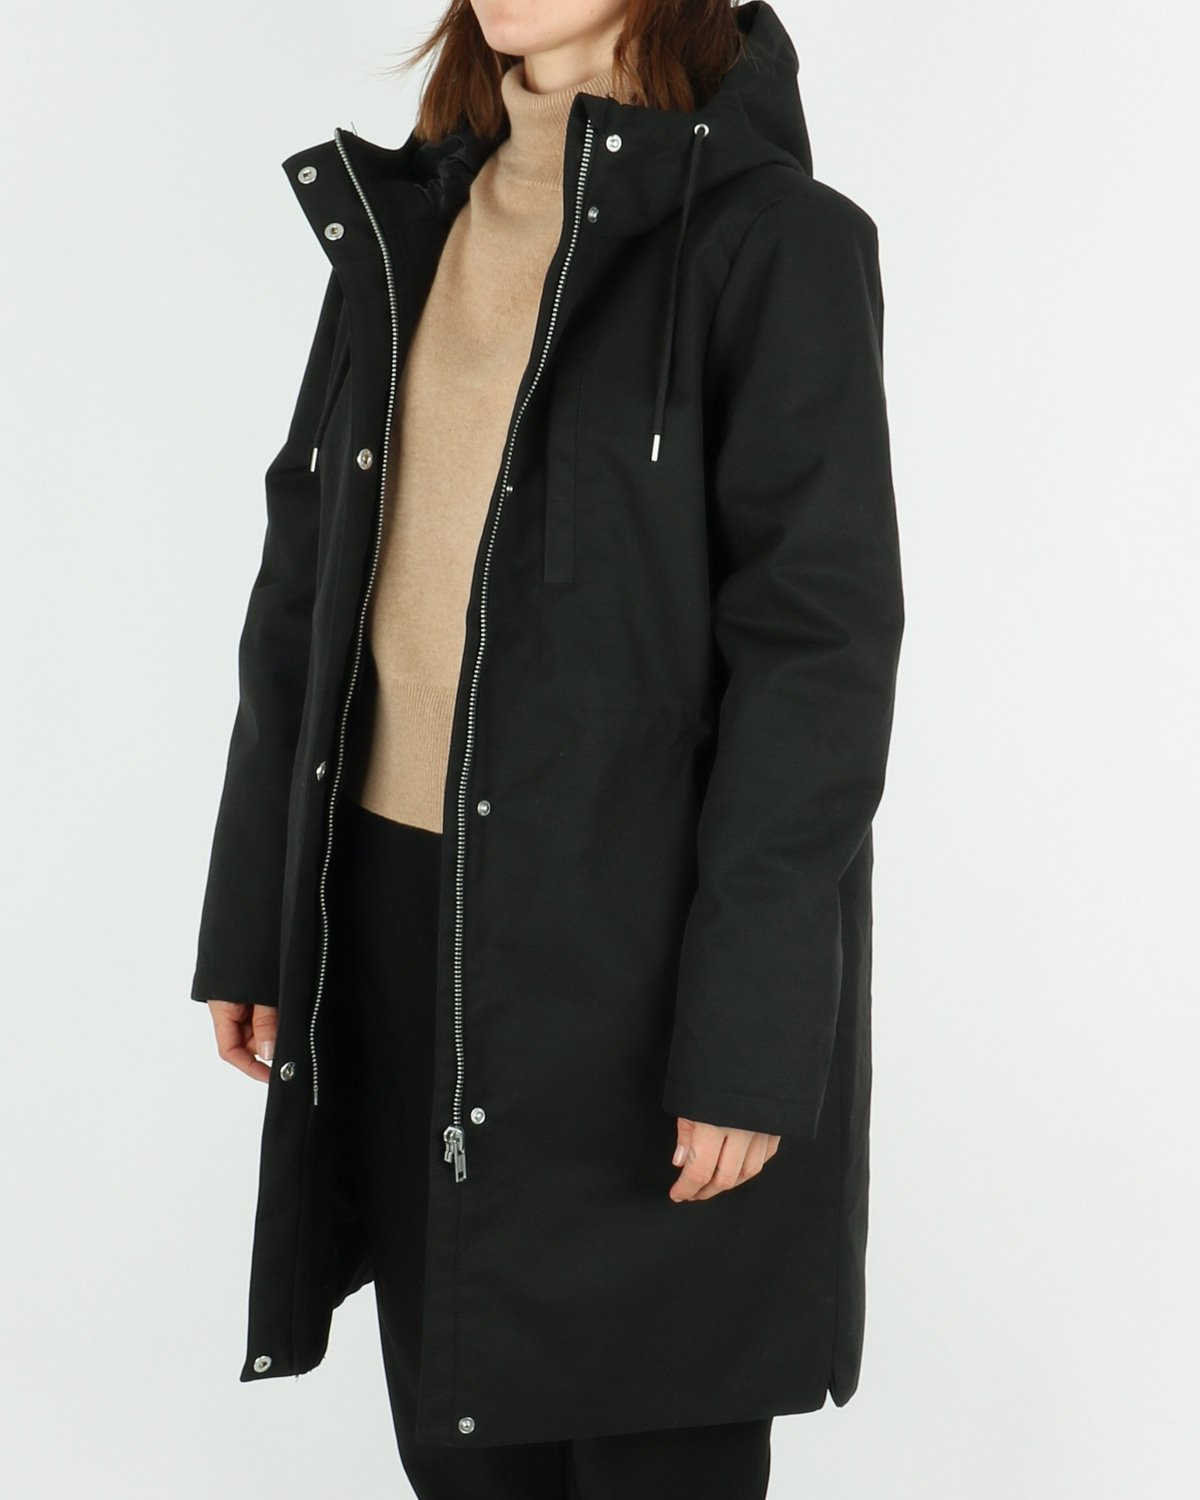 selfhood_parka jacket 77130_black_3_6